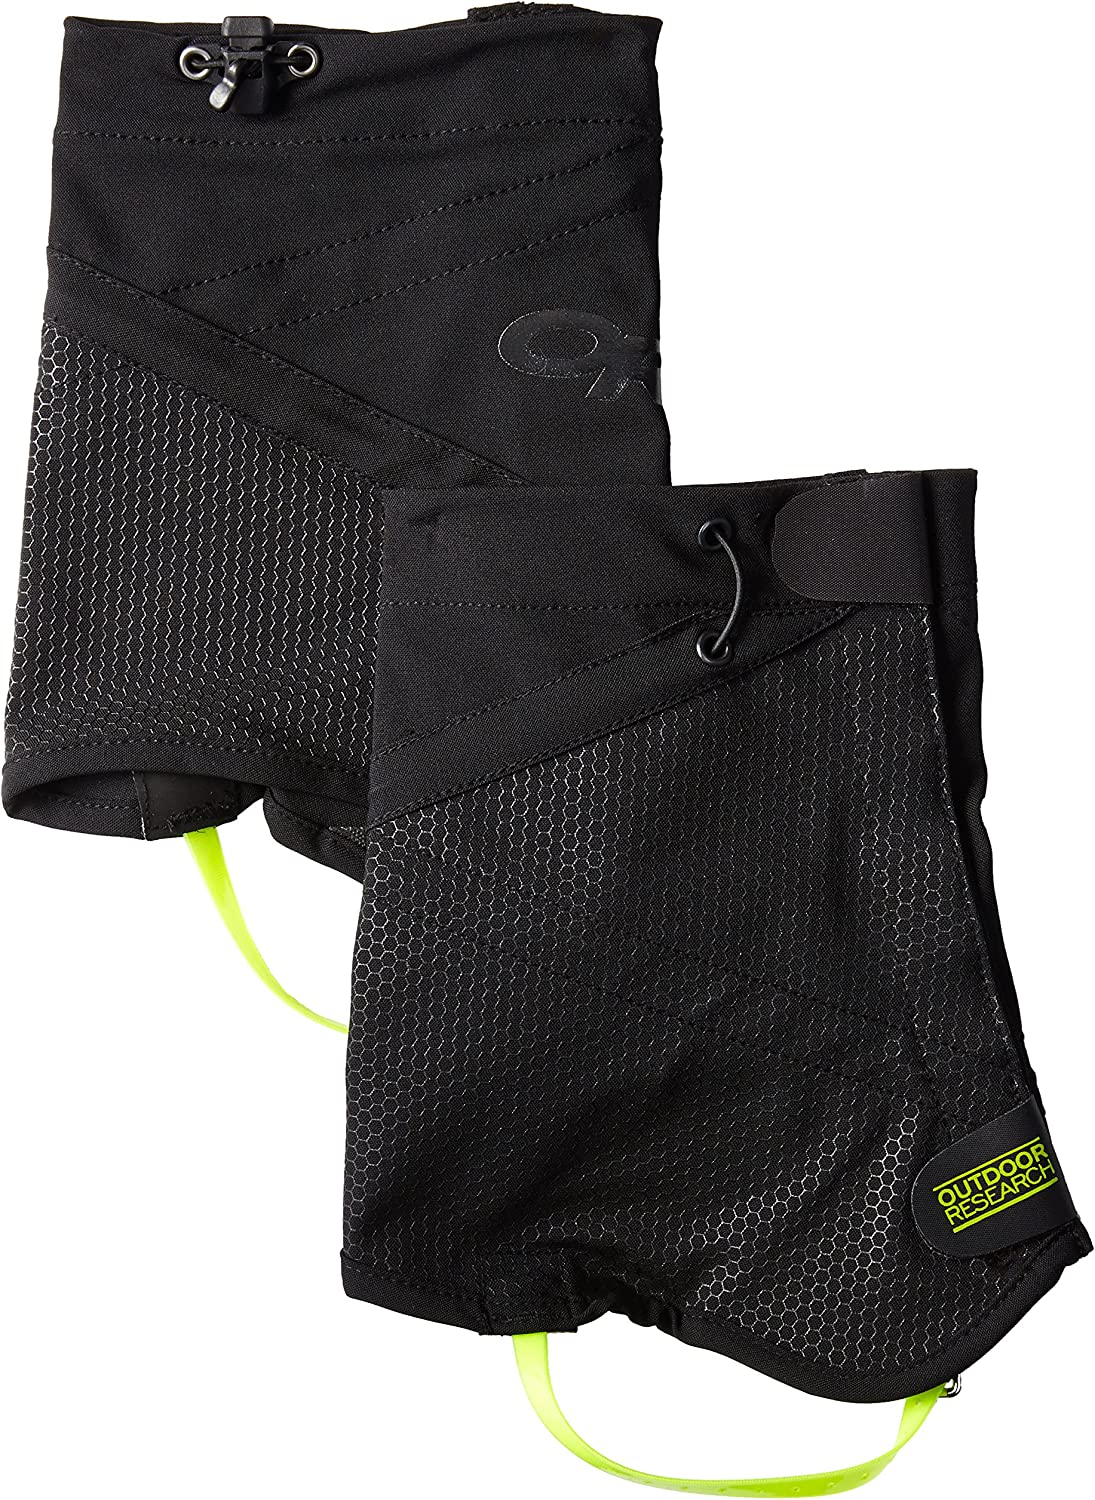 Outdoor Research Flex-Tex II Durable Hiking Backpacking Lightweight Gaiters